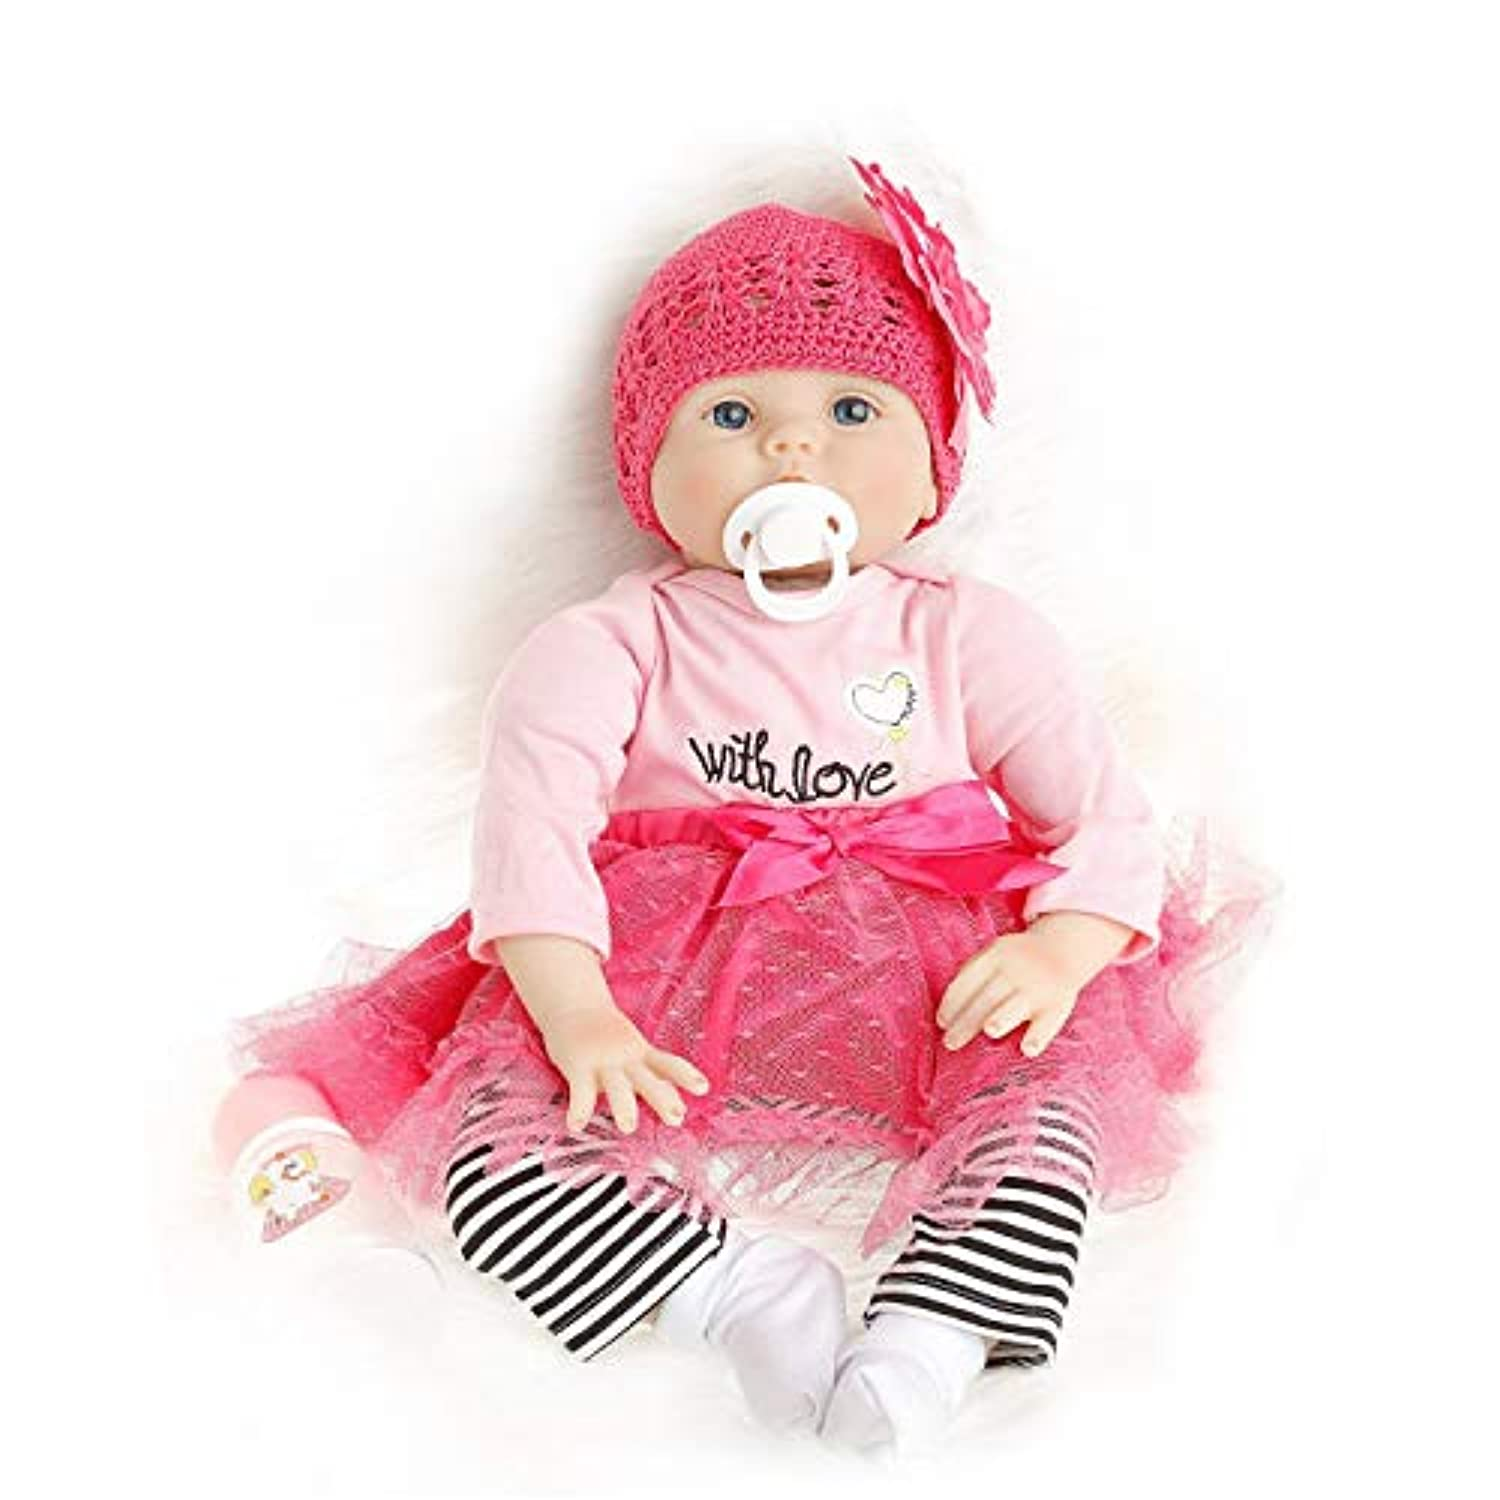 SanyDoll Reborn Baby Doll Soft Silicone 22inch 55cm Magnetic Lovely Lifelike Cute Lovely Baby Red Christmas gift set